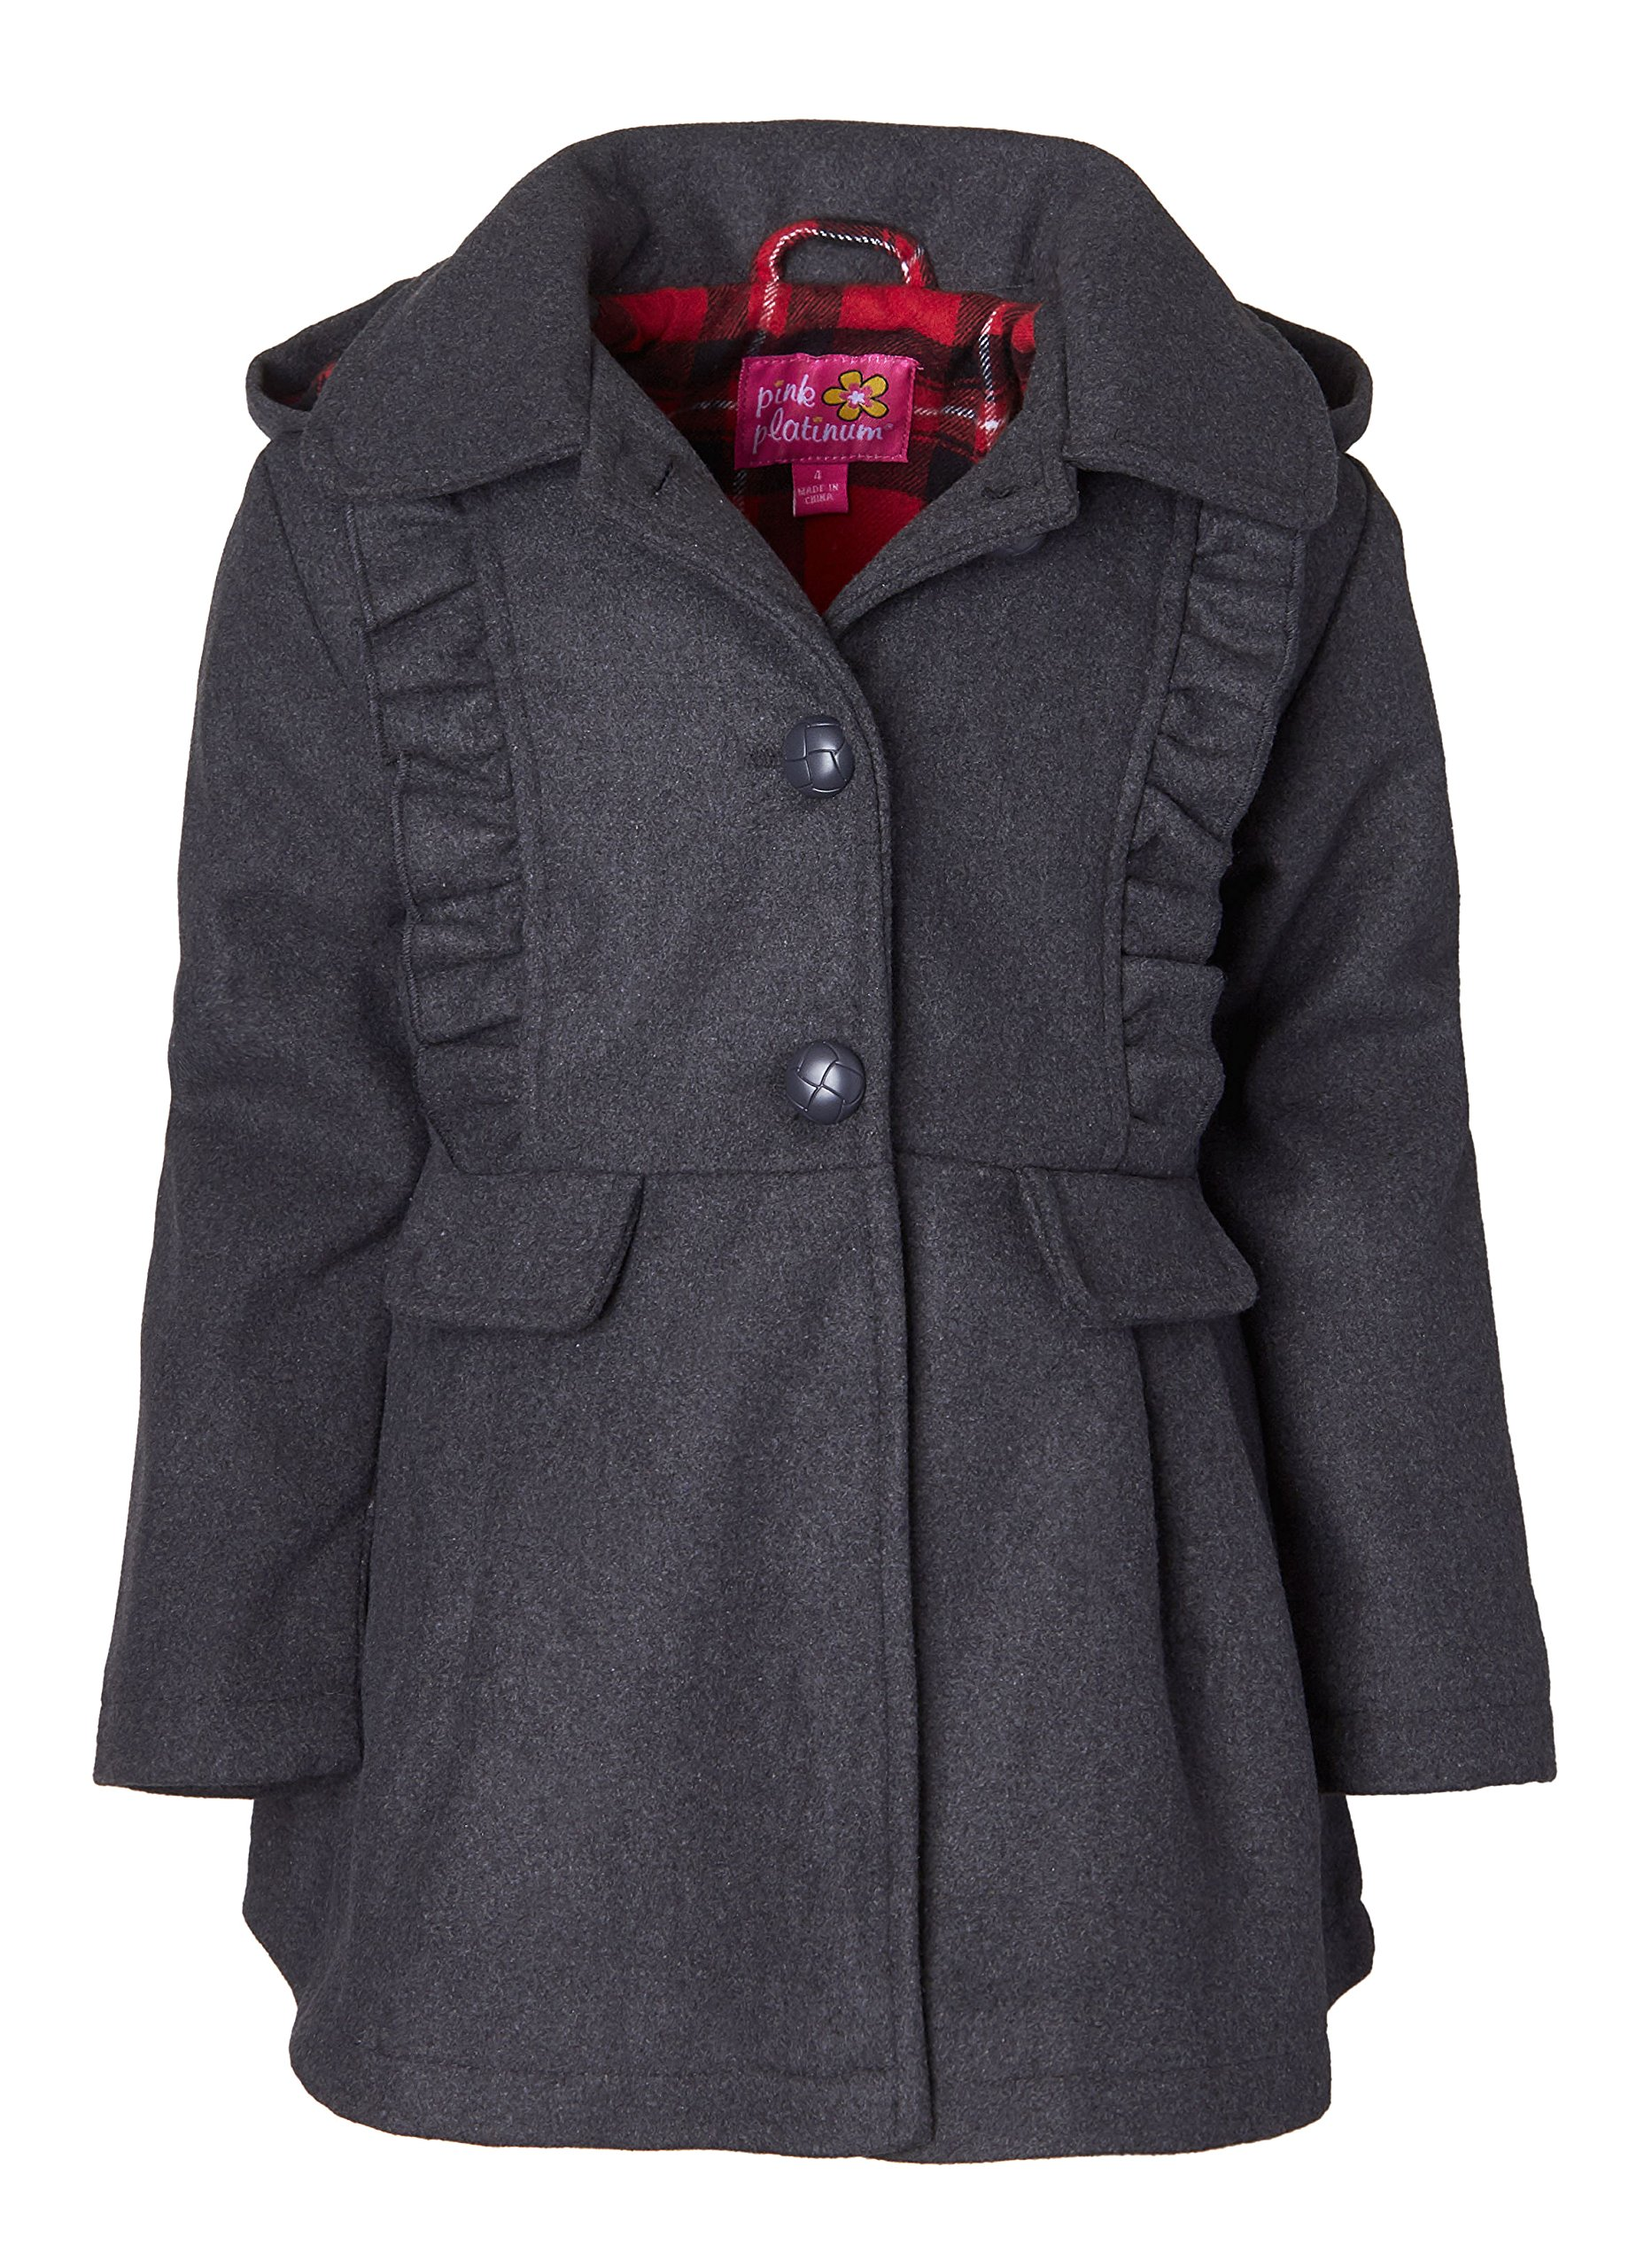 Pink Platinum Girls Wool Blend Hooded Plaid Lined Winter Dress Pea Coat Jacket - Charcoal (Size 4)